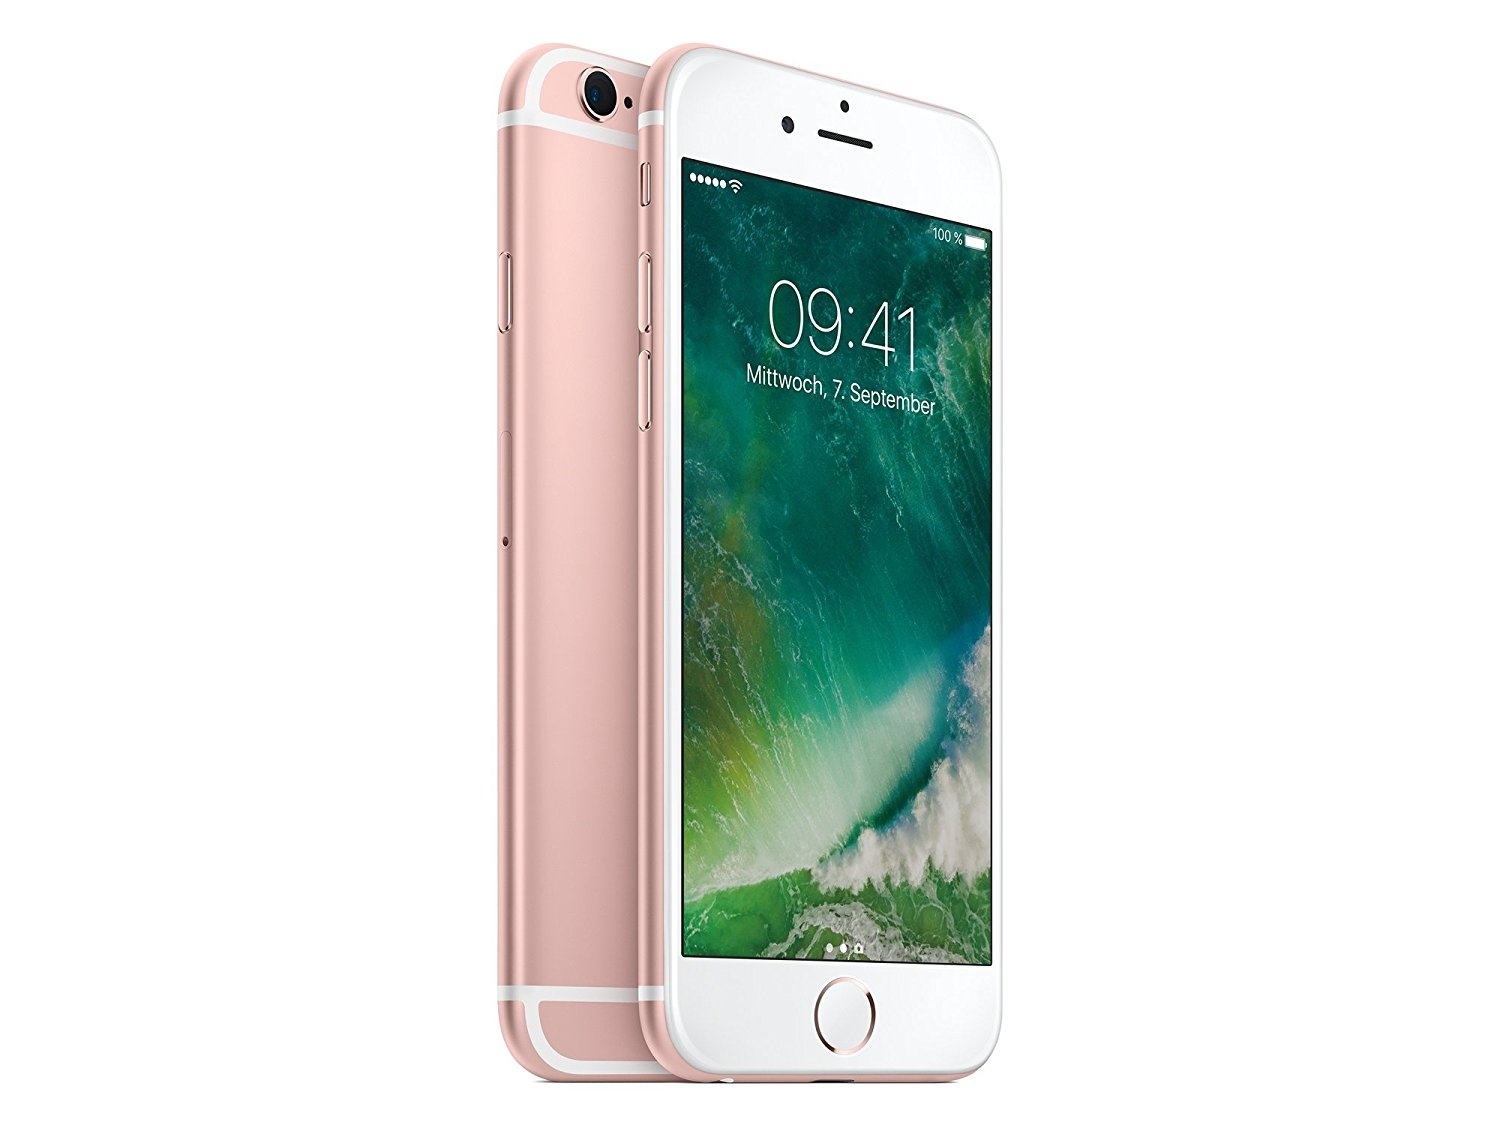 apple iphone 6s 128gb ros gold lte smartphone ohne simlock. Black Bedroom Furniture Sets. Home Design Ideas